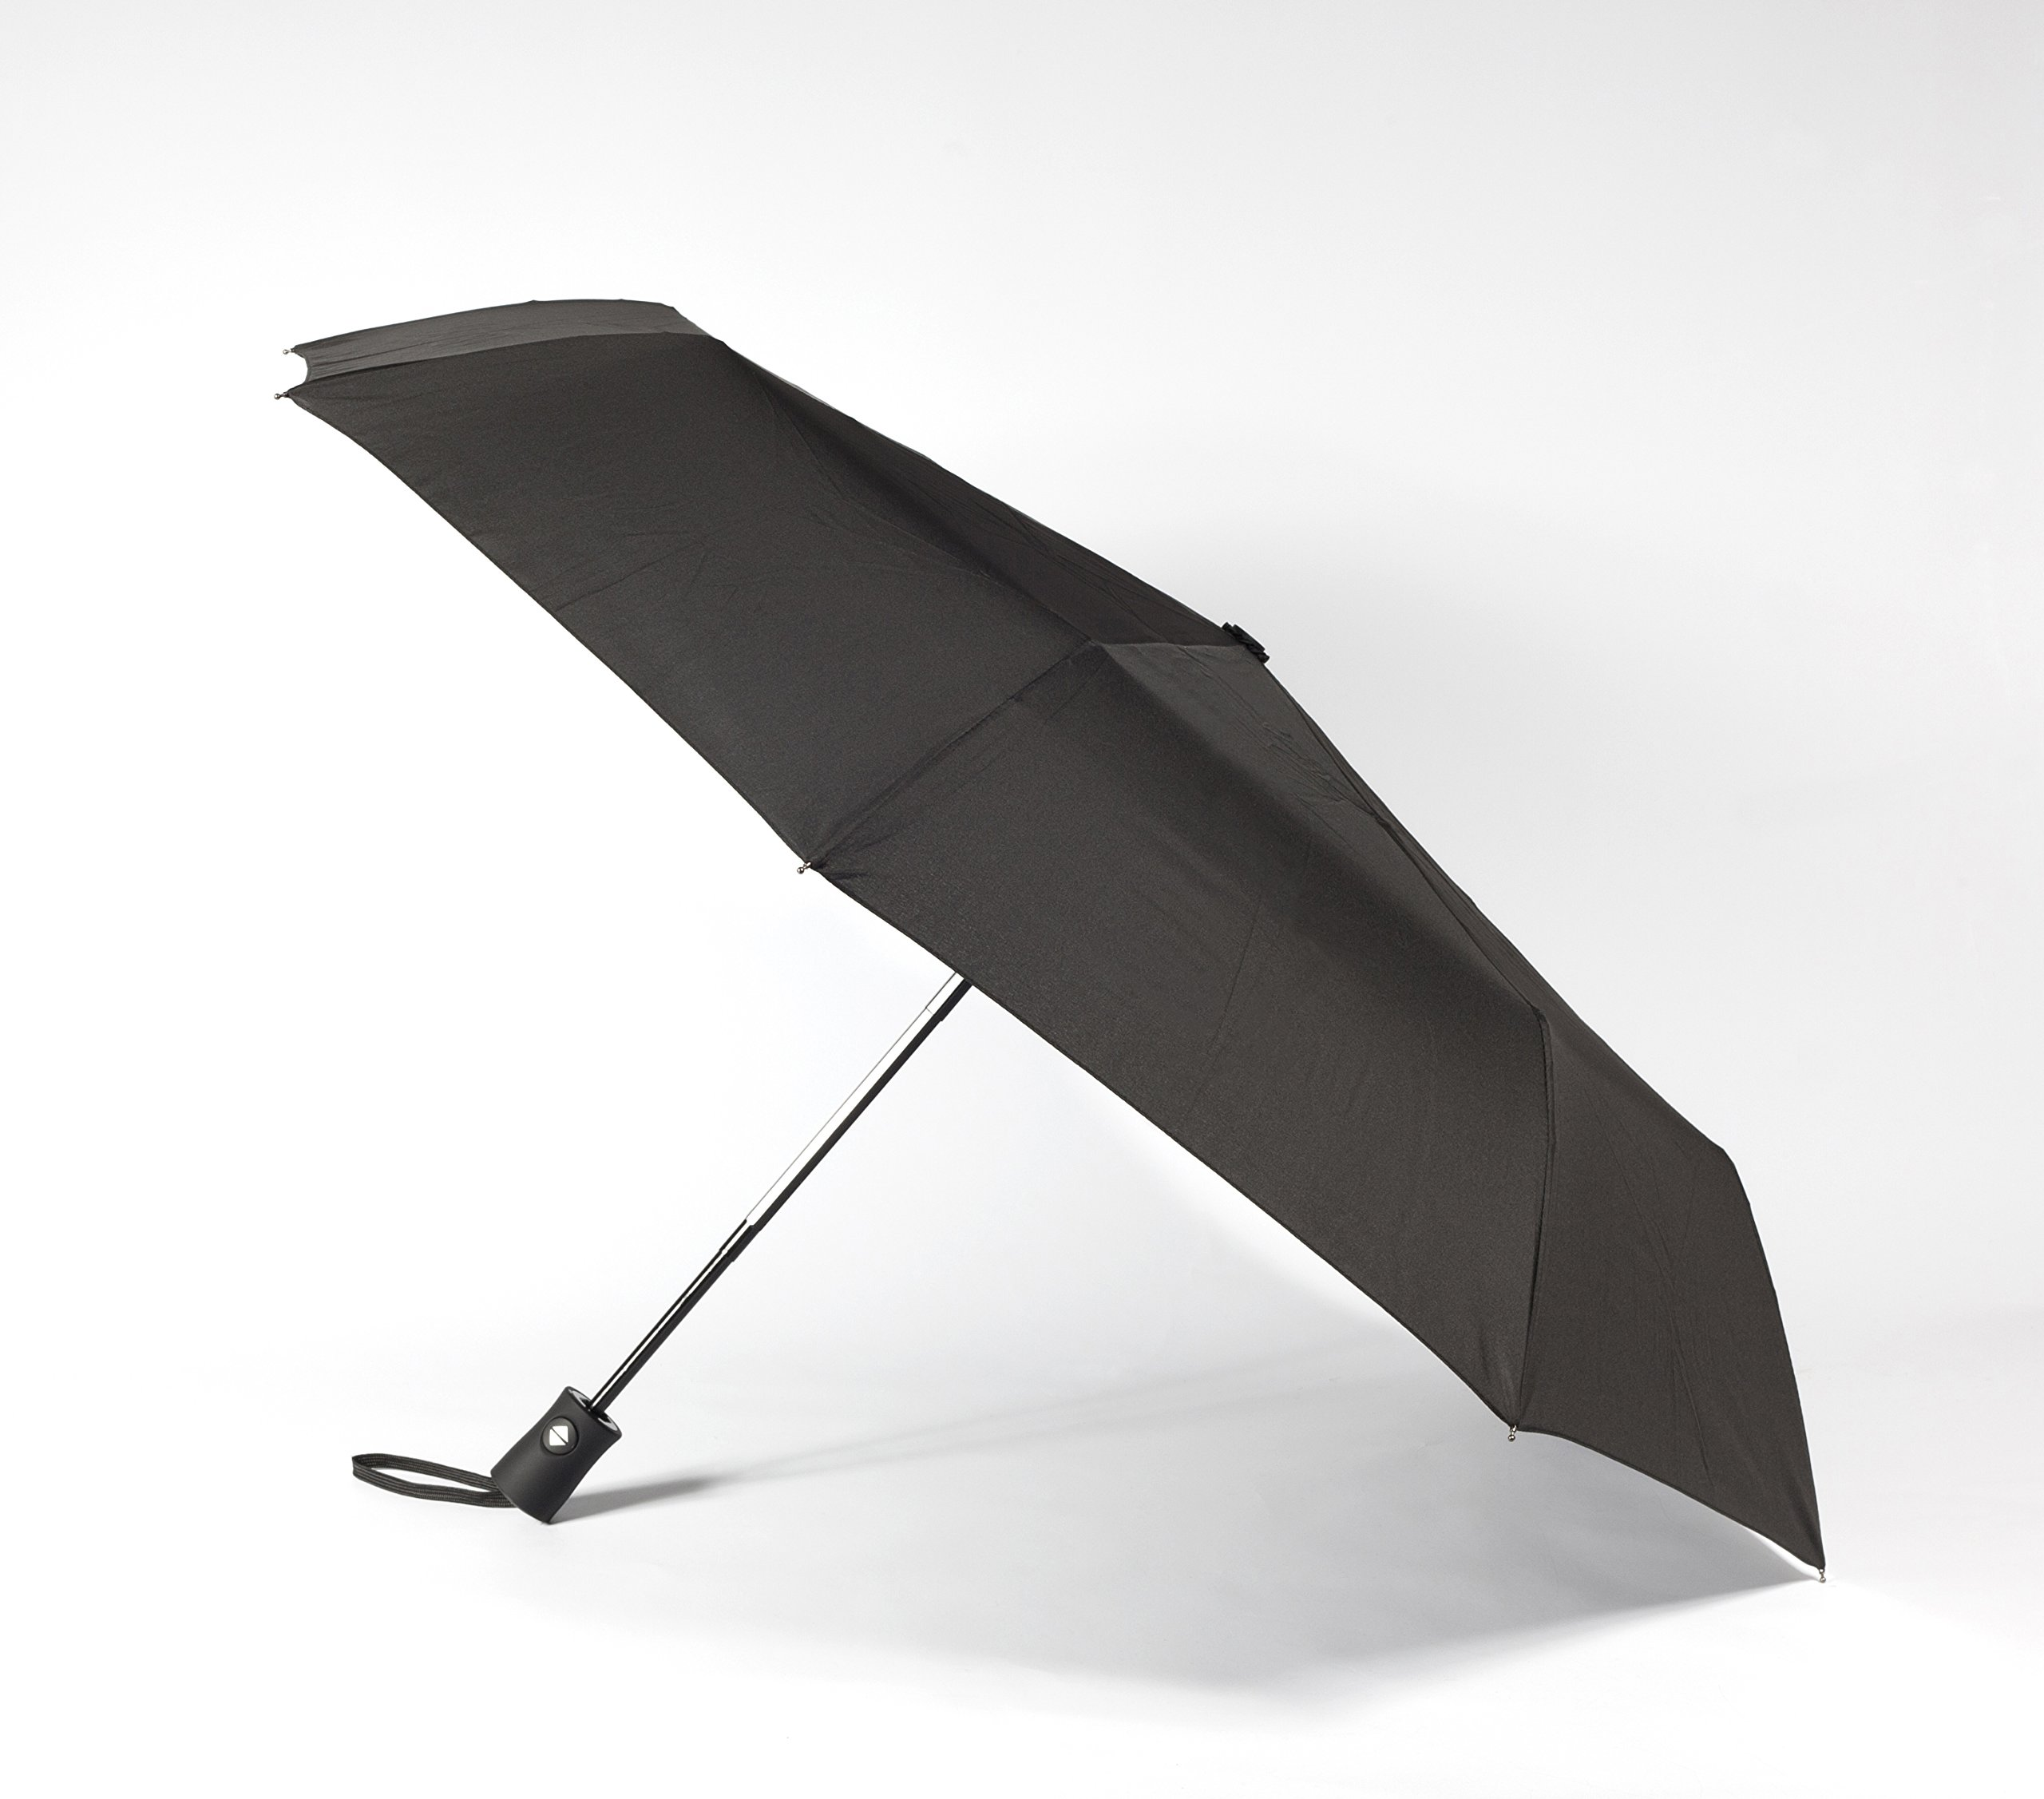 Sturdy Windproof Travel Umbrella